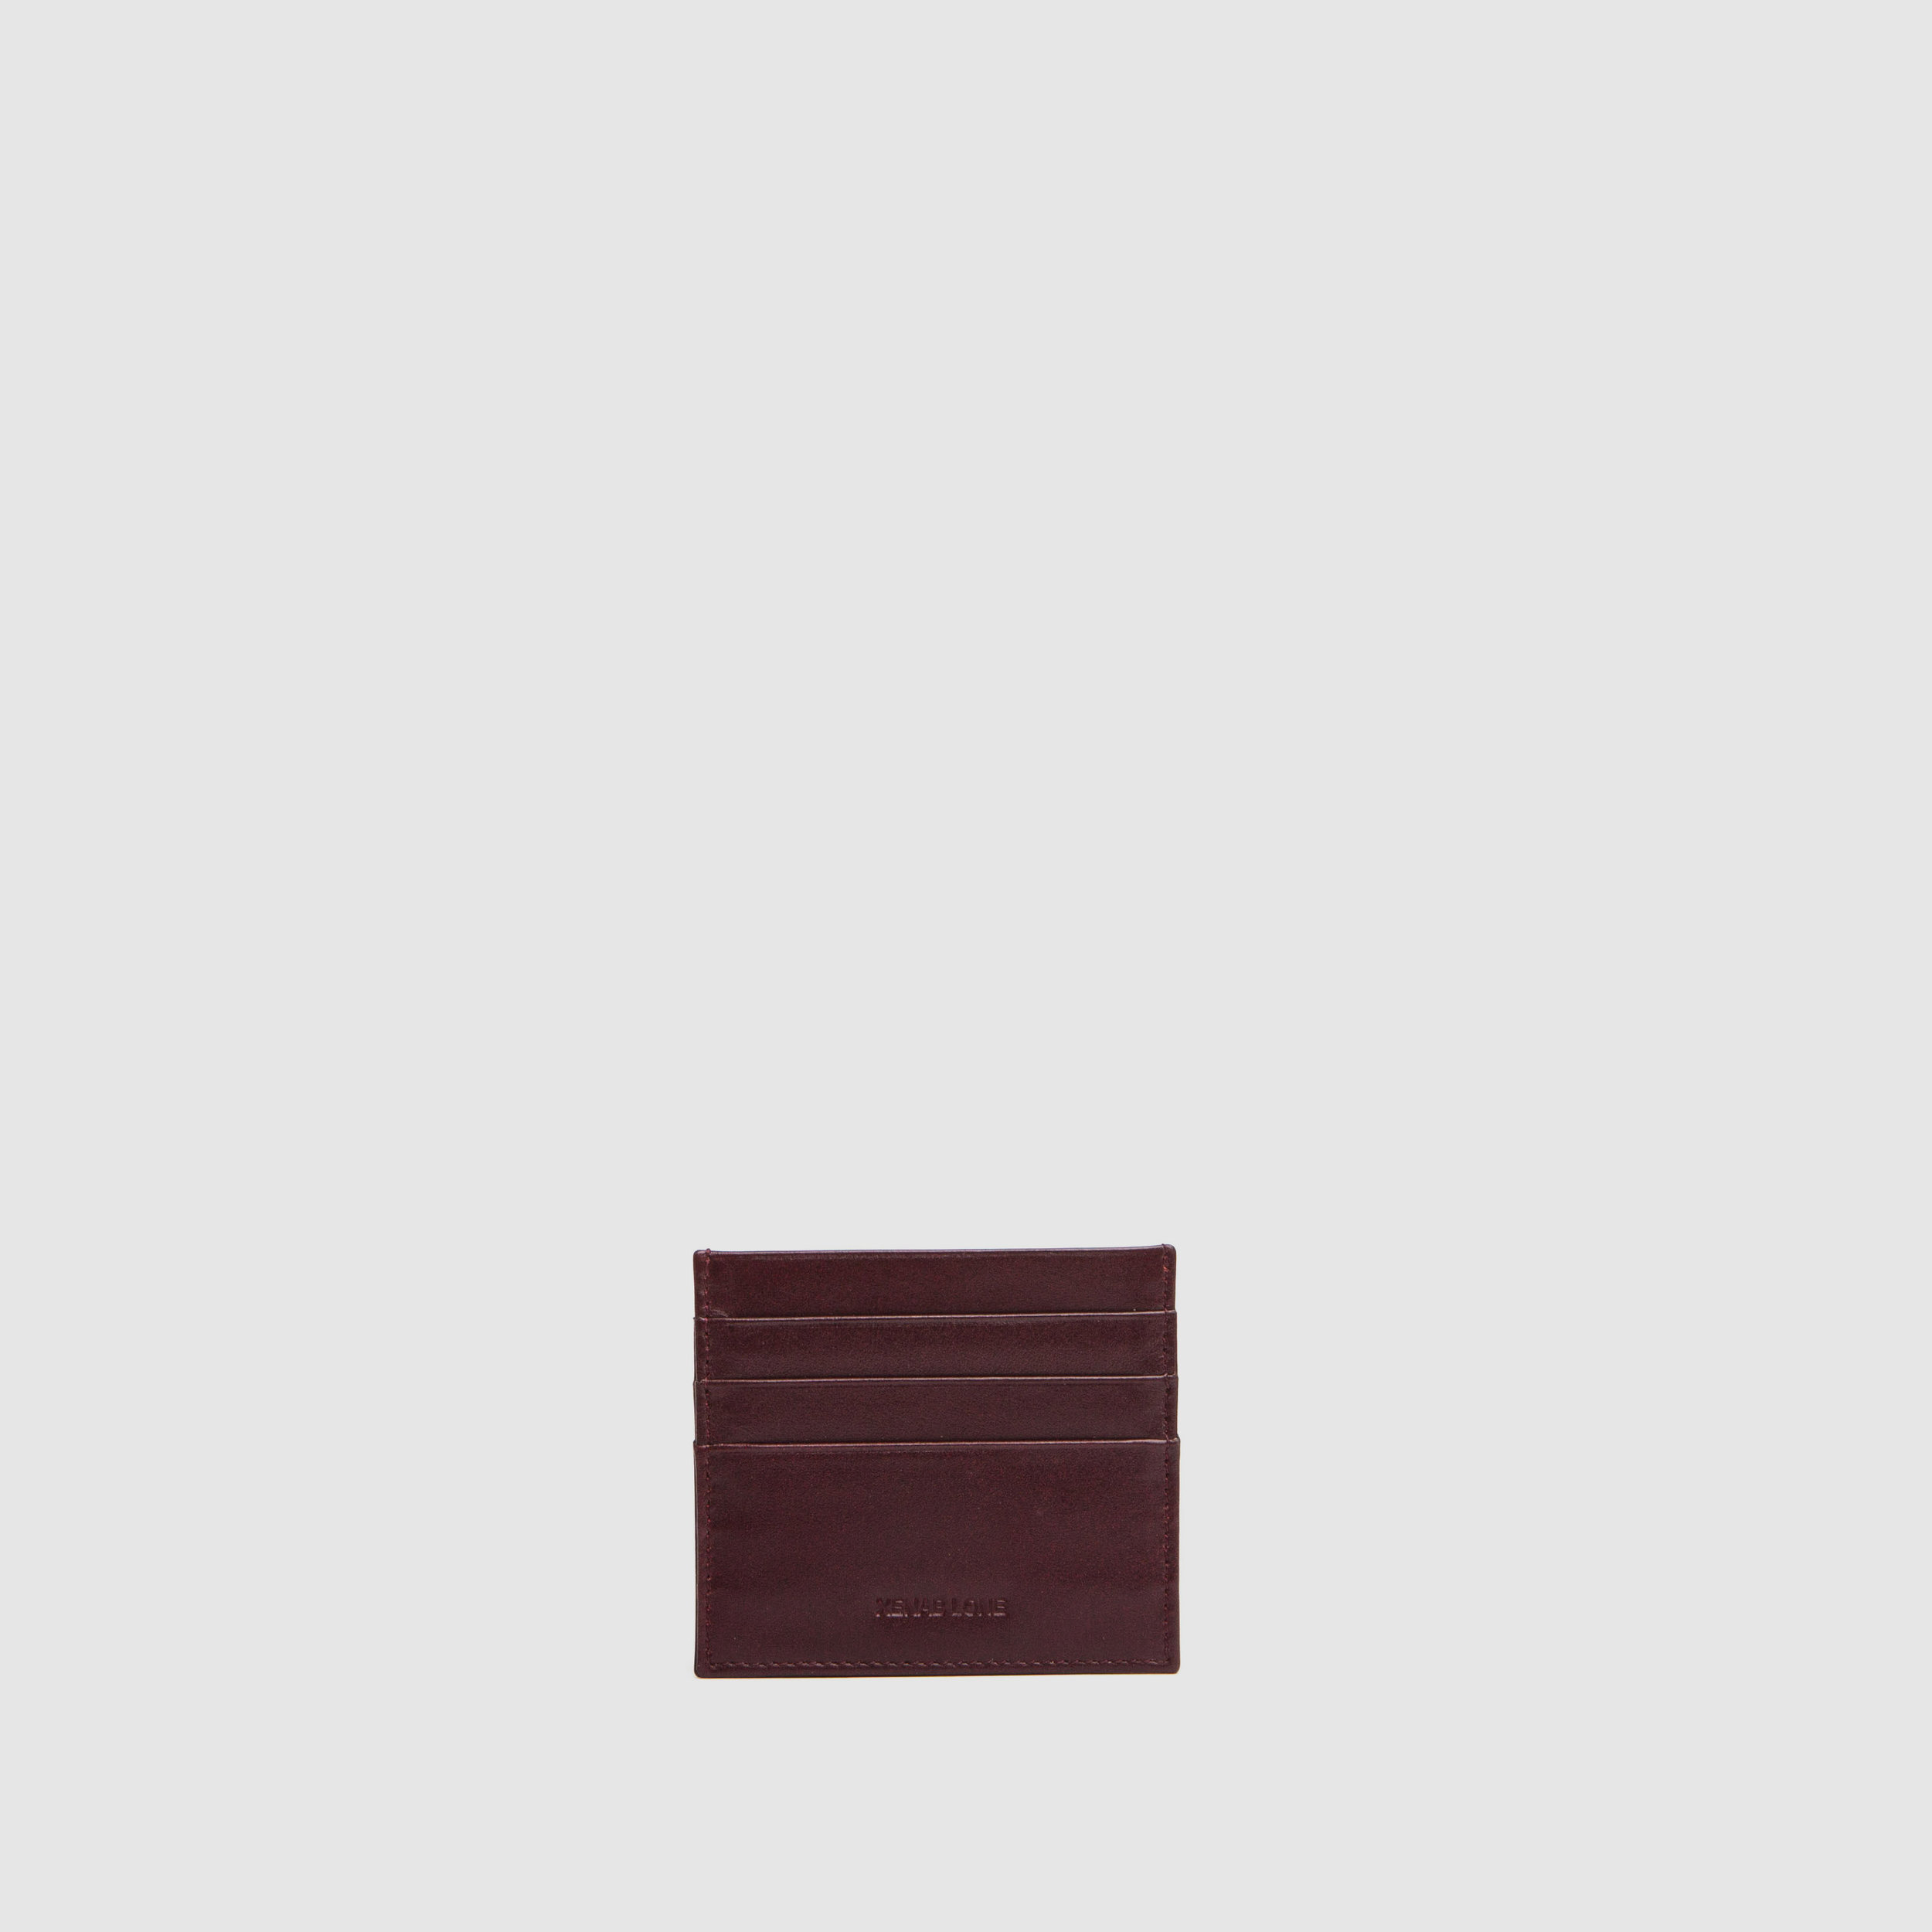 Wallets&Pouches_0001s_0001s_0003_Layer 38.jpg